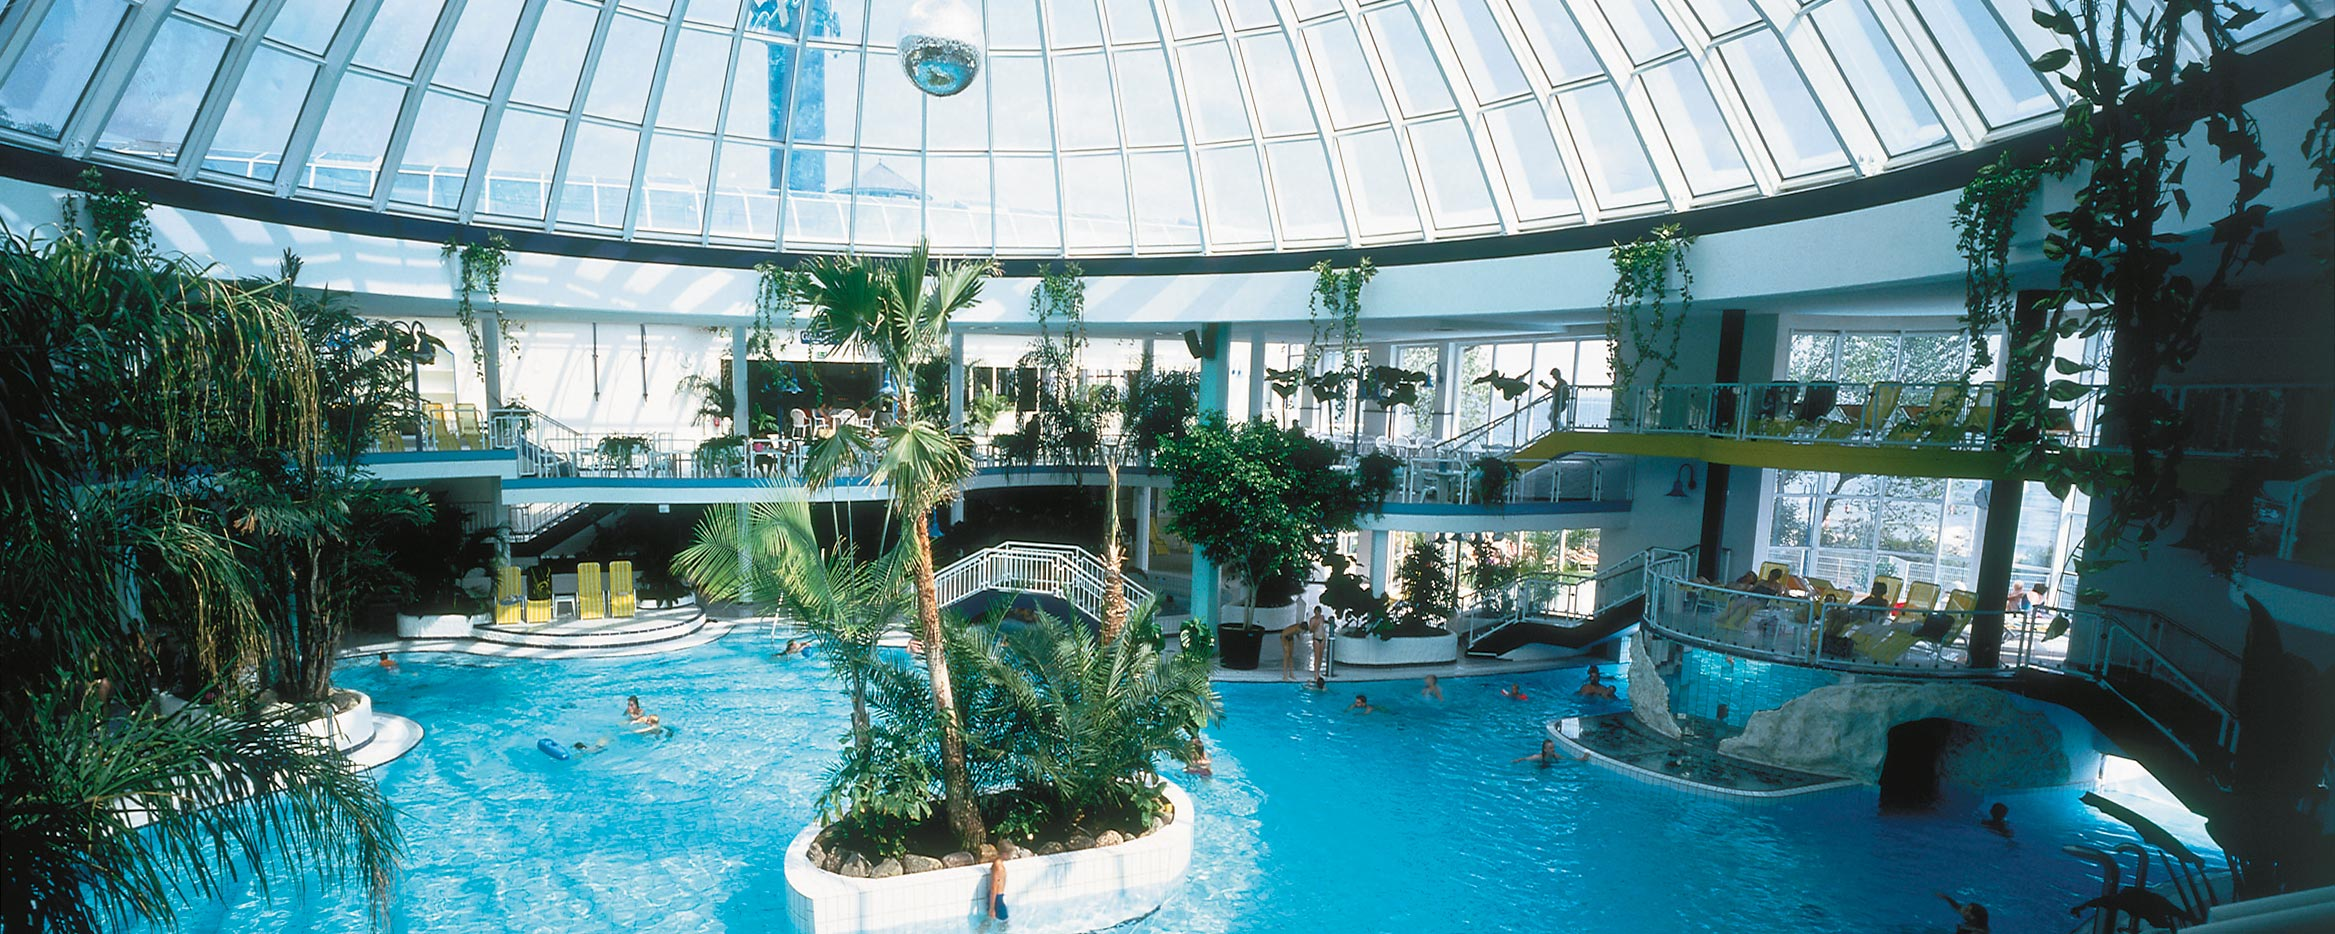 Ostsee Therme, Partner des LUV Shopping